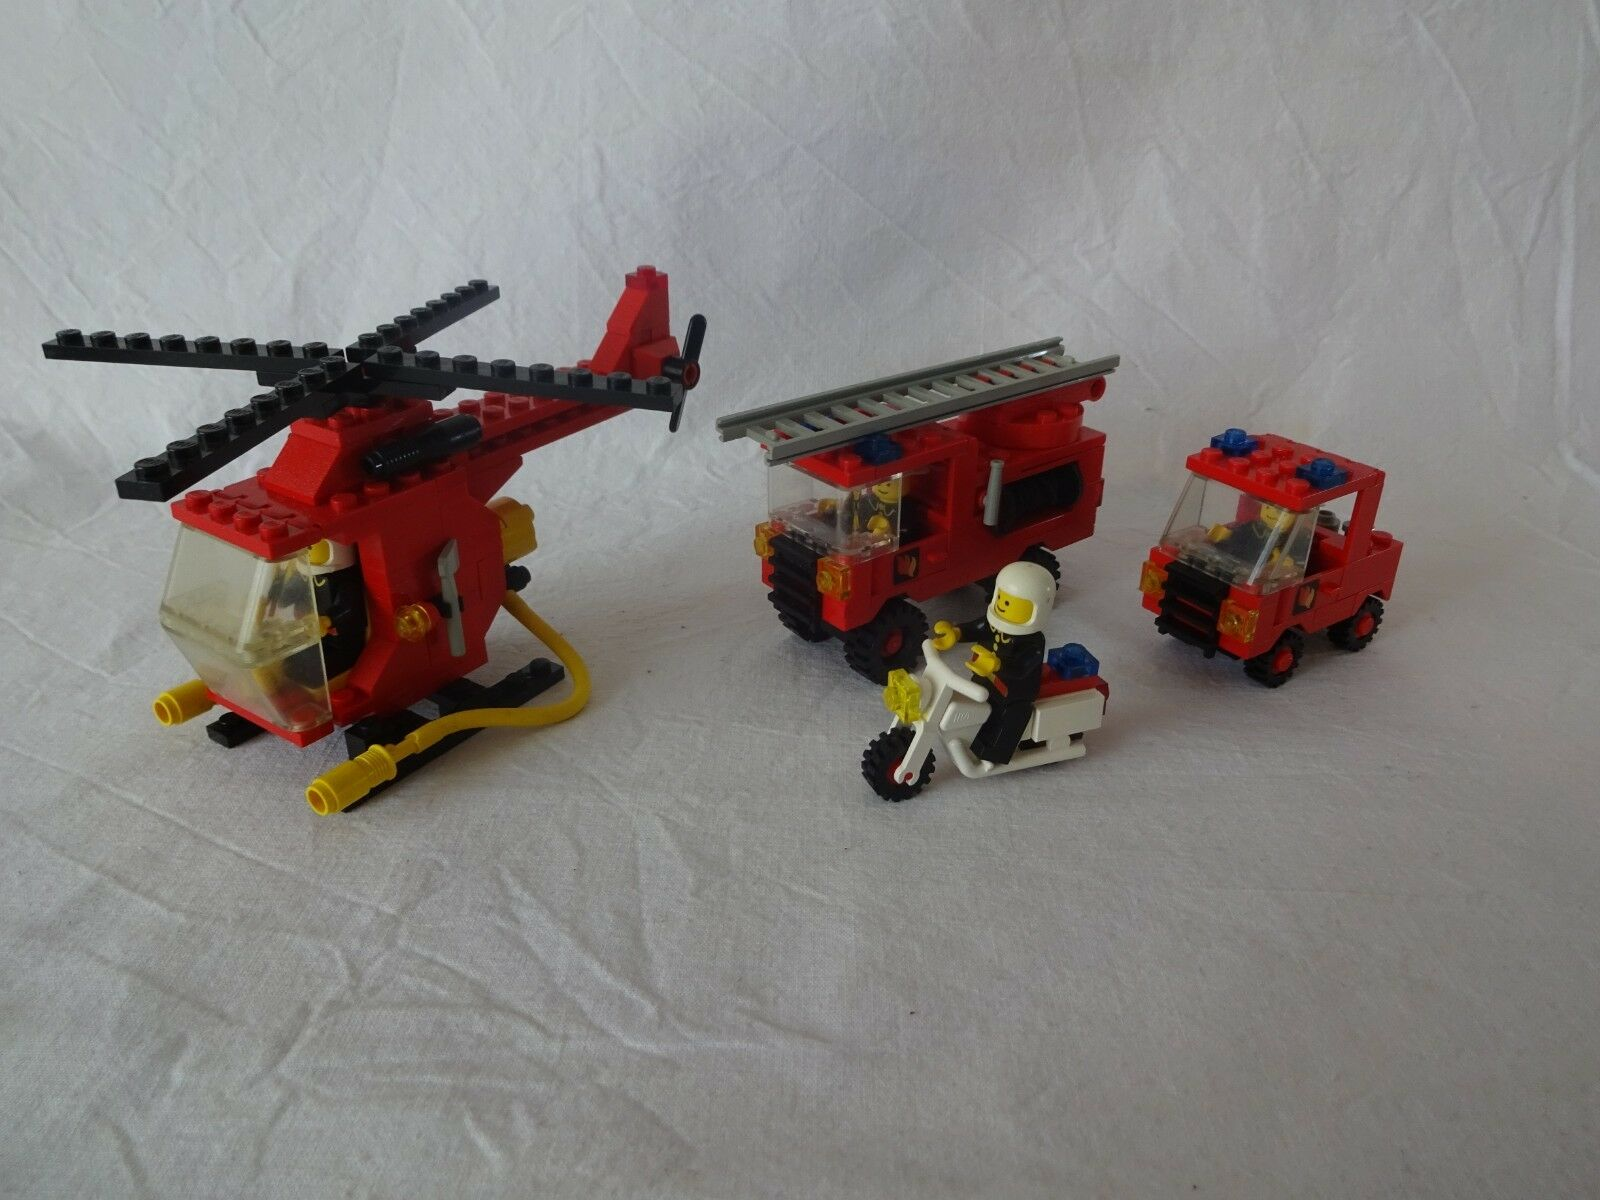 LEGO® City 6366 Squad, Fire & Rescue Squad, 6366 6685 Fire Copter 1 b27045